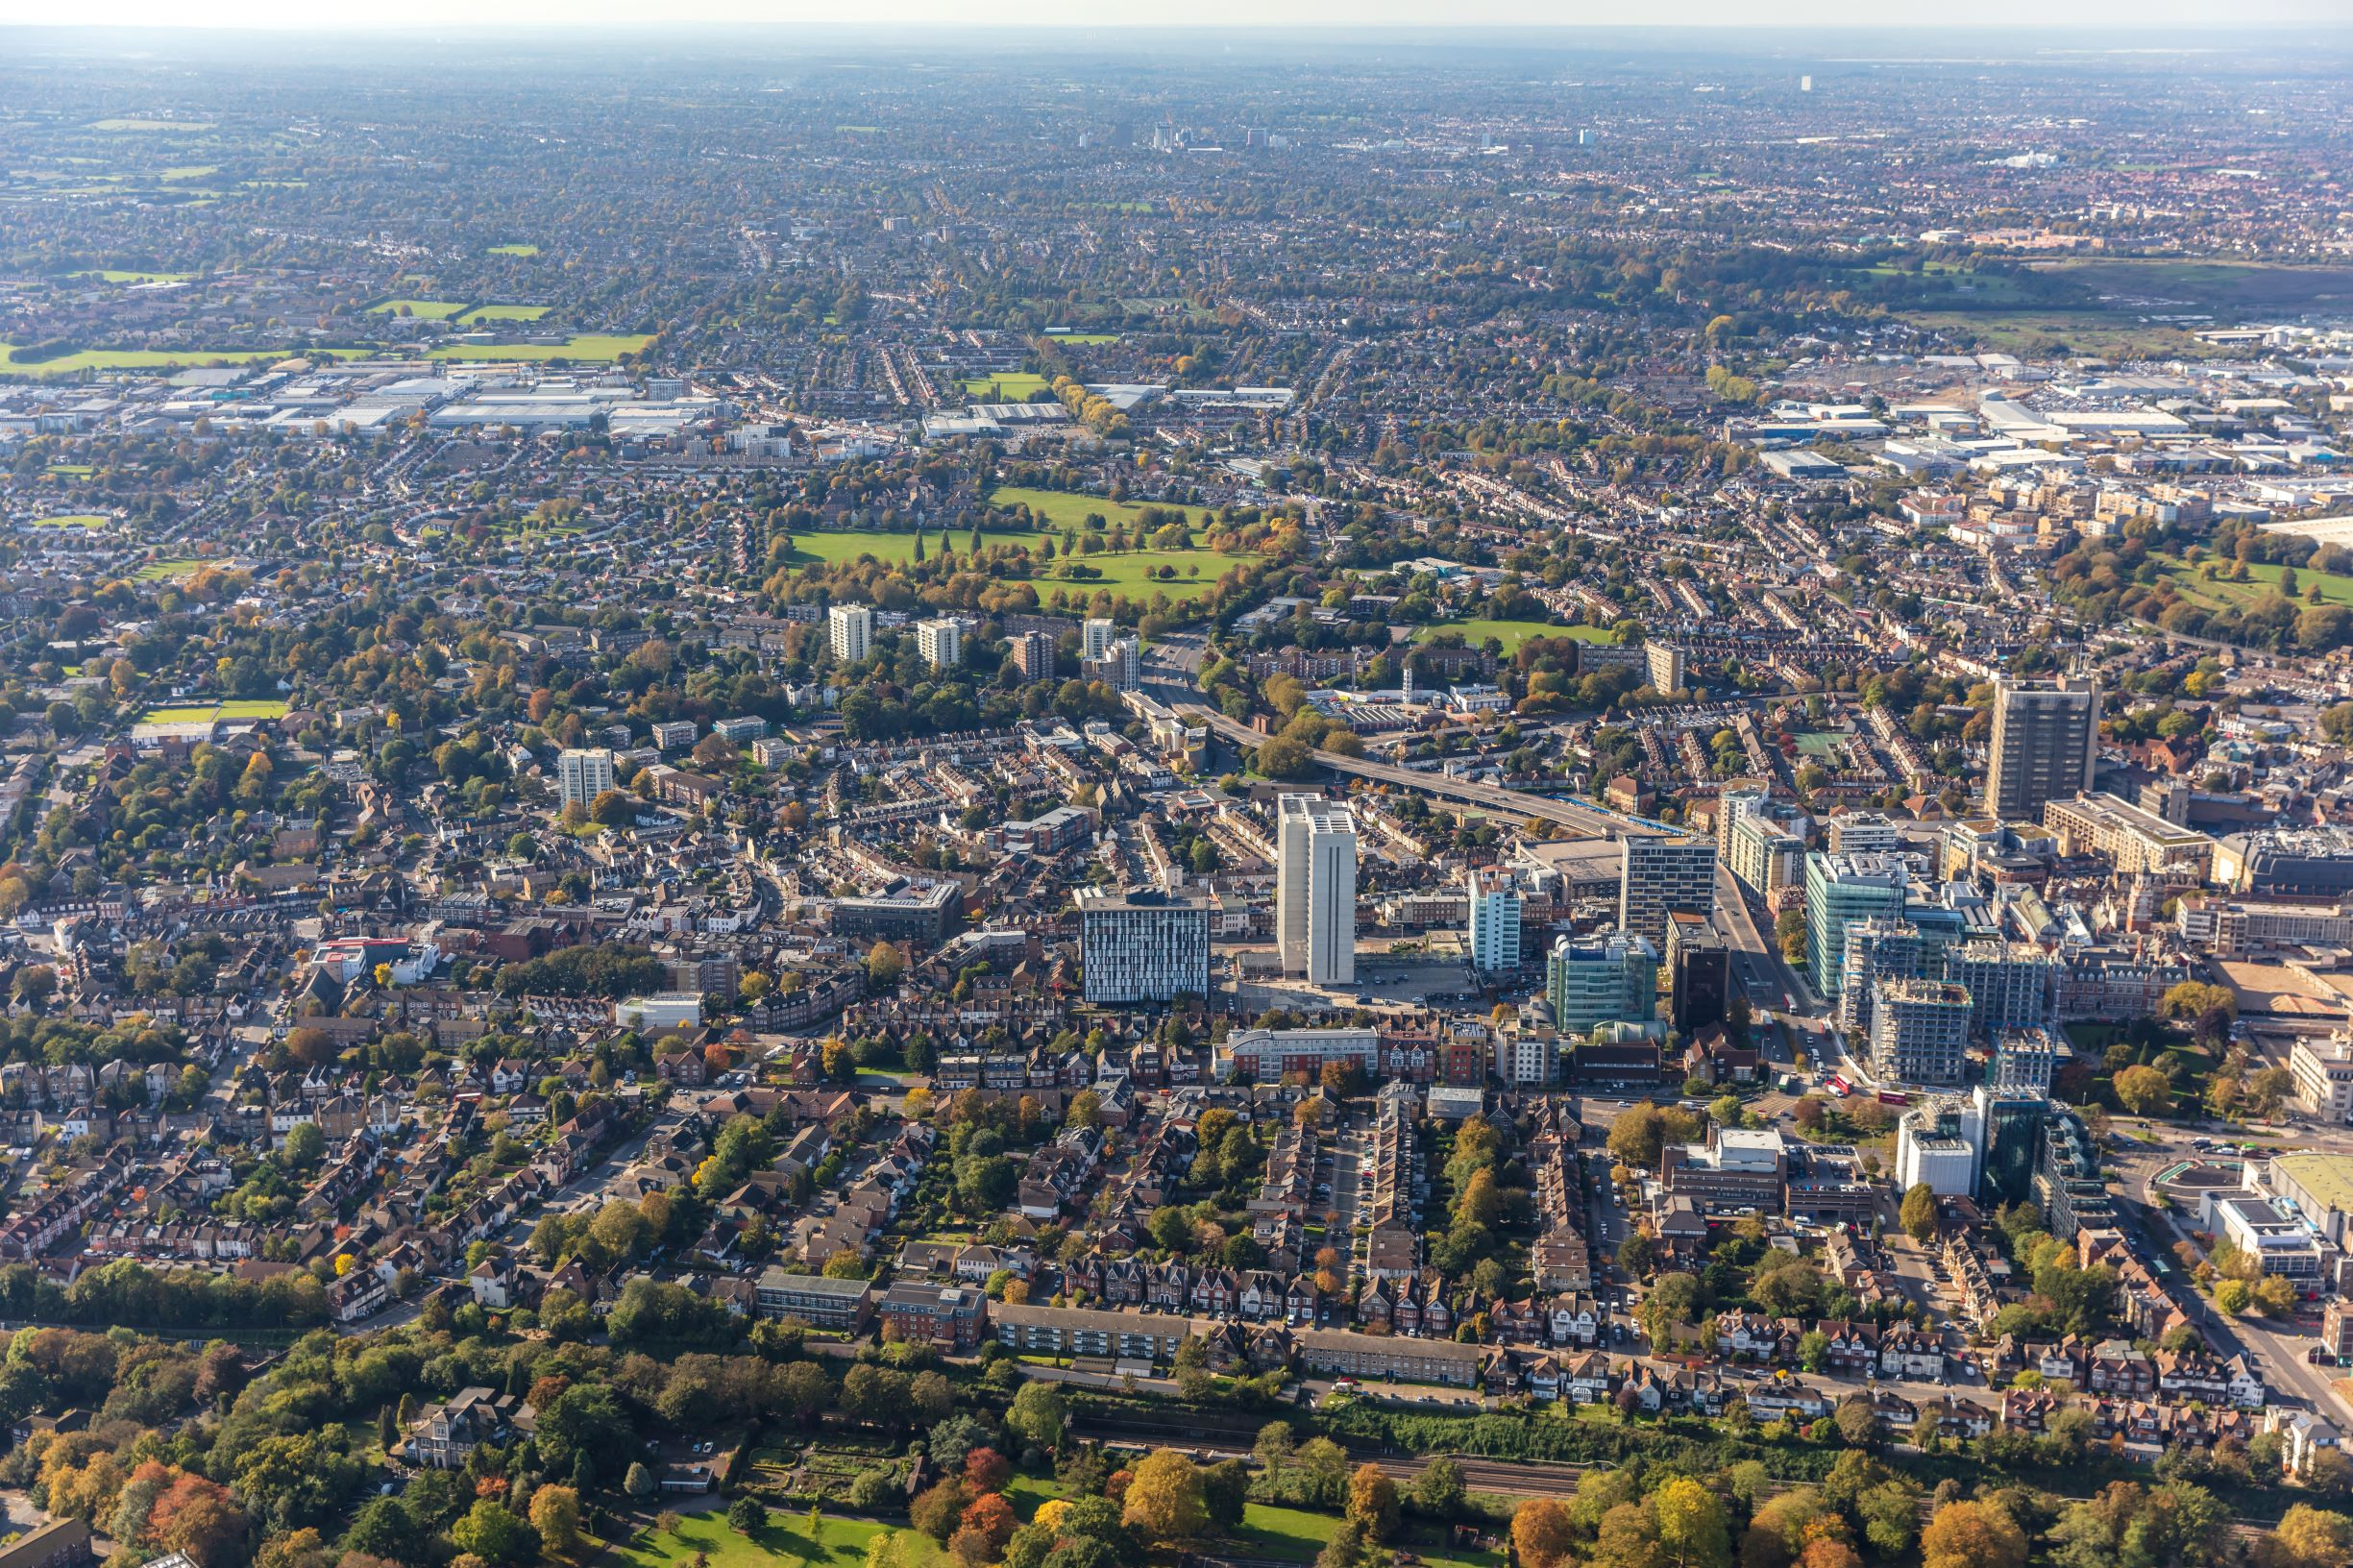 View of dev3elopment and parks in Croydon